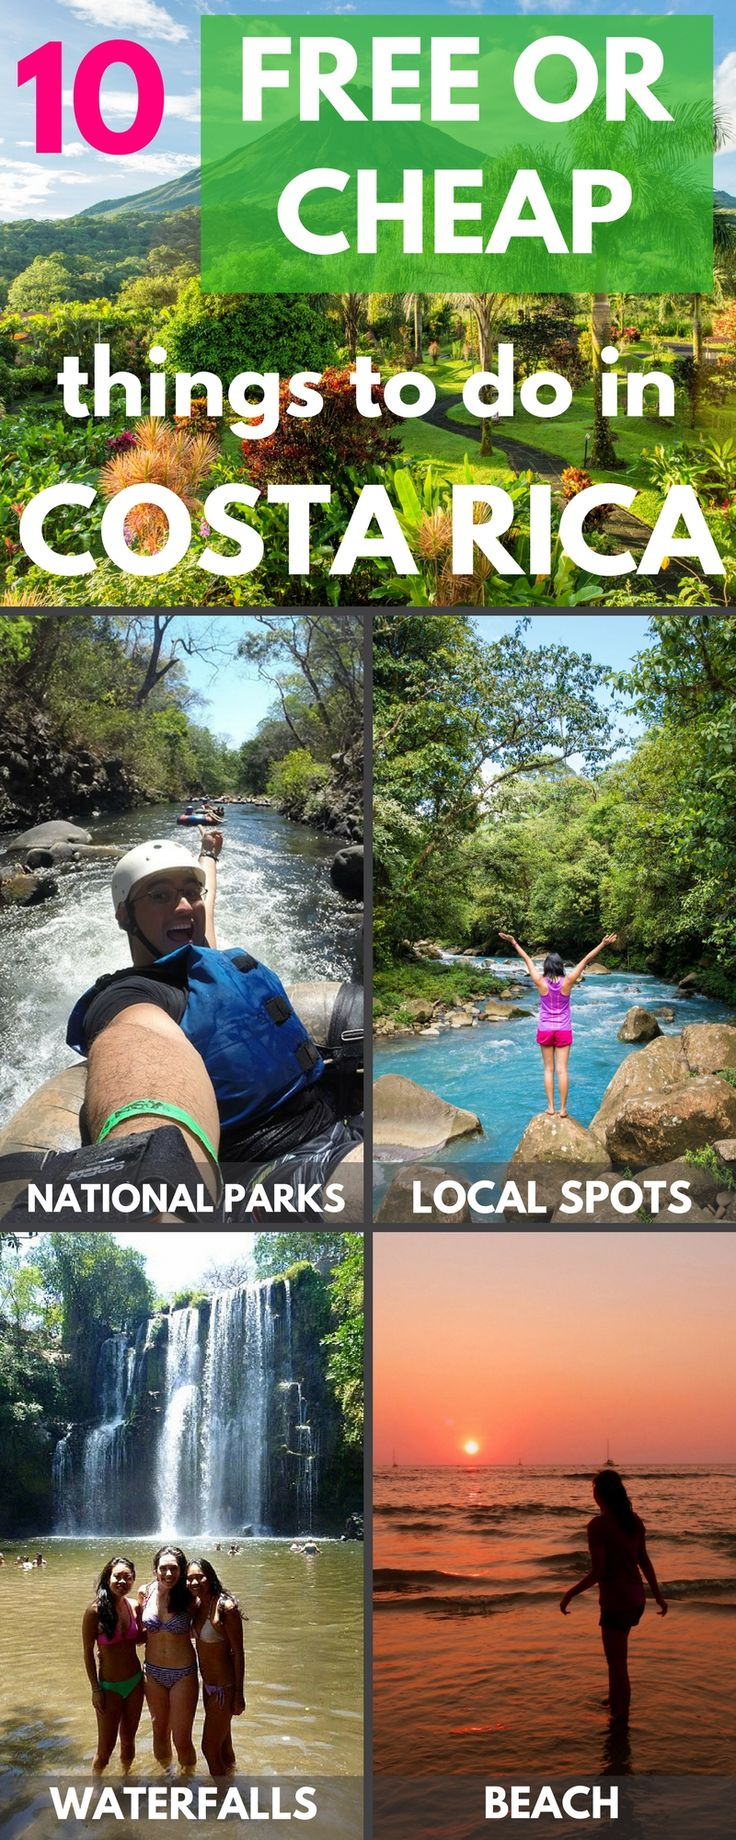 10 free or cheap things to do in Costa Rica. Click through to read: https://mytanfeet.com/activities/10-cheap-things-to-do-in-costa-rica/ Costa Rica | Costa Rica travel blog | Things to do in Costa Rica